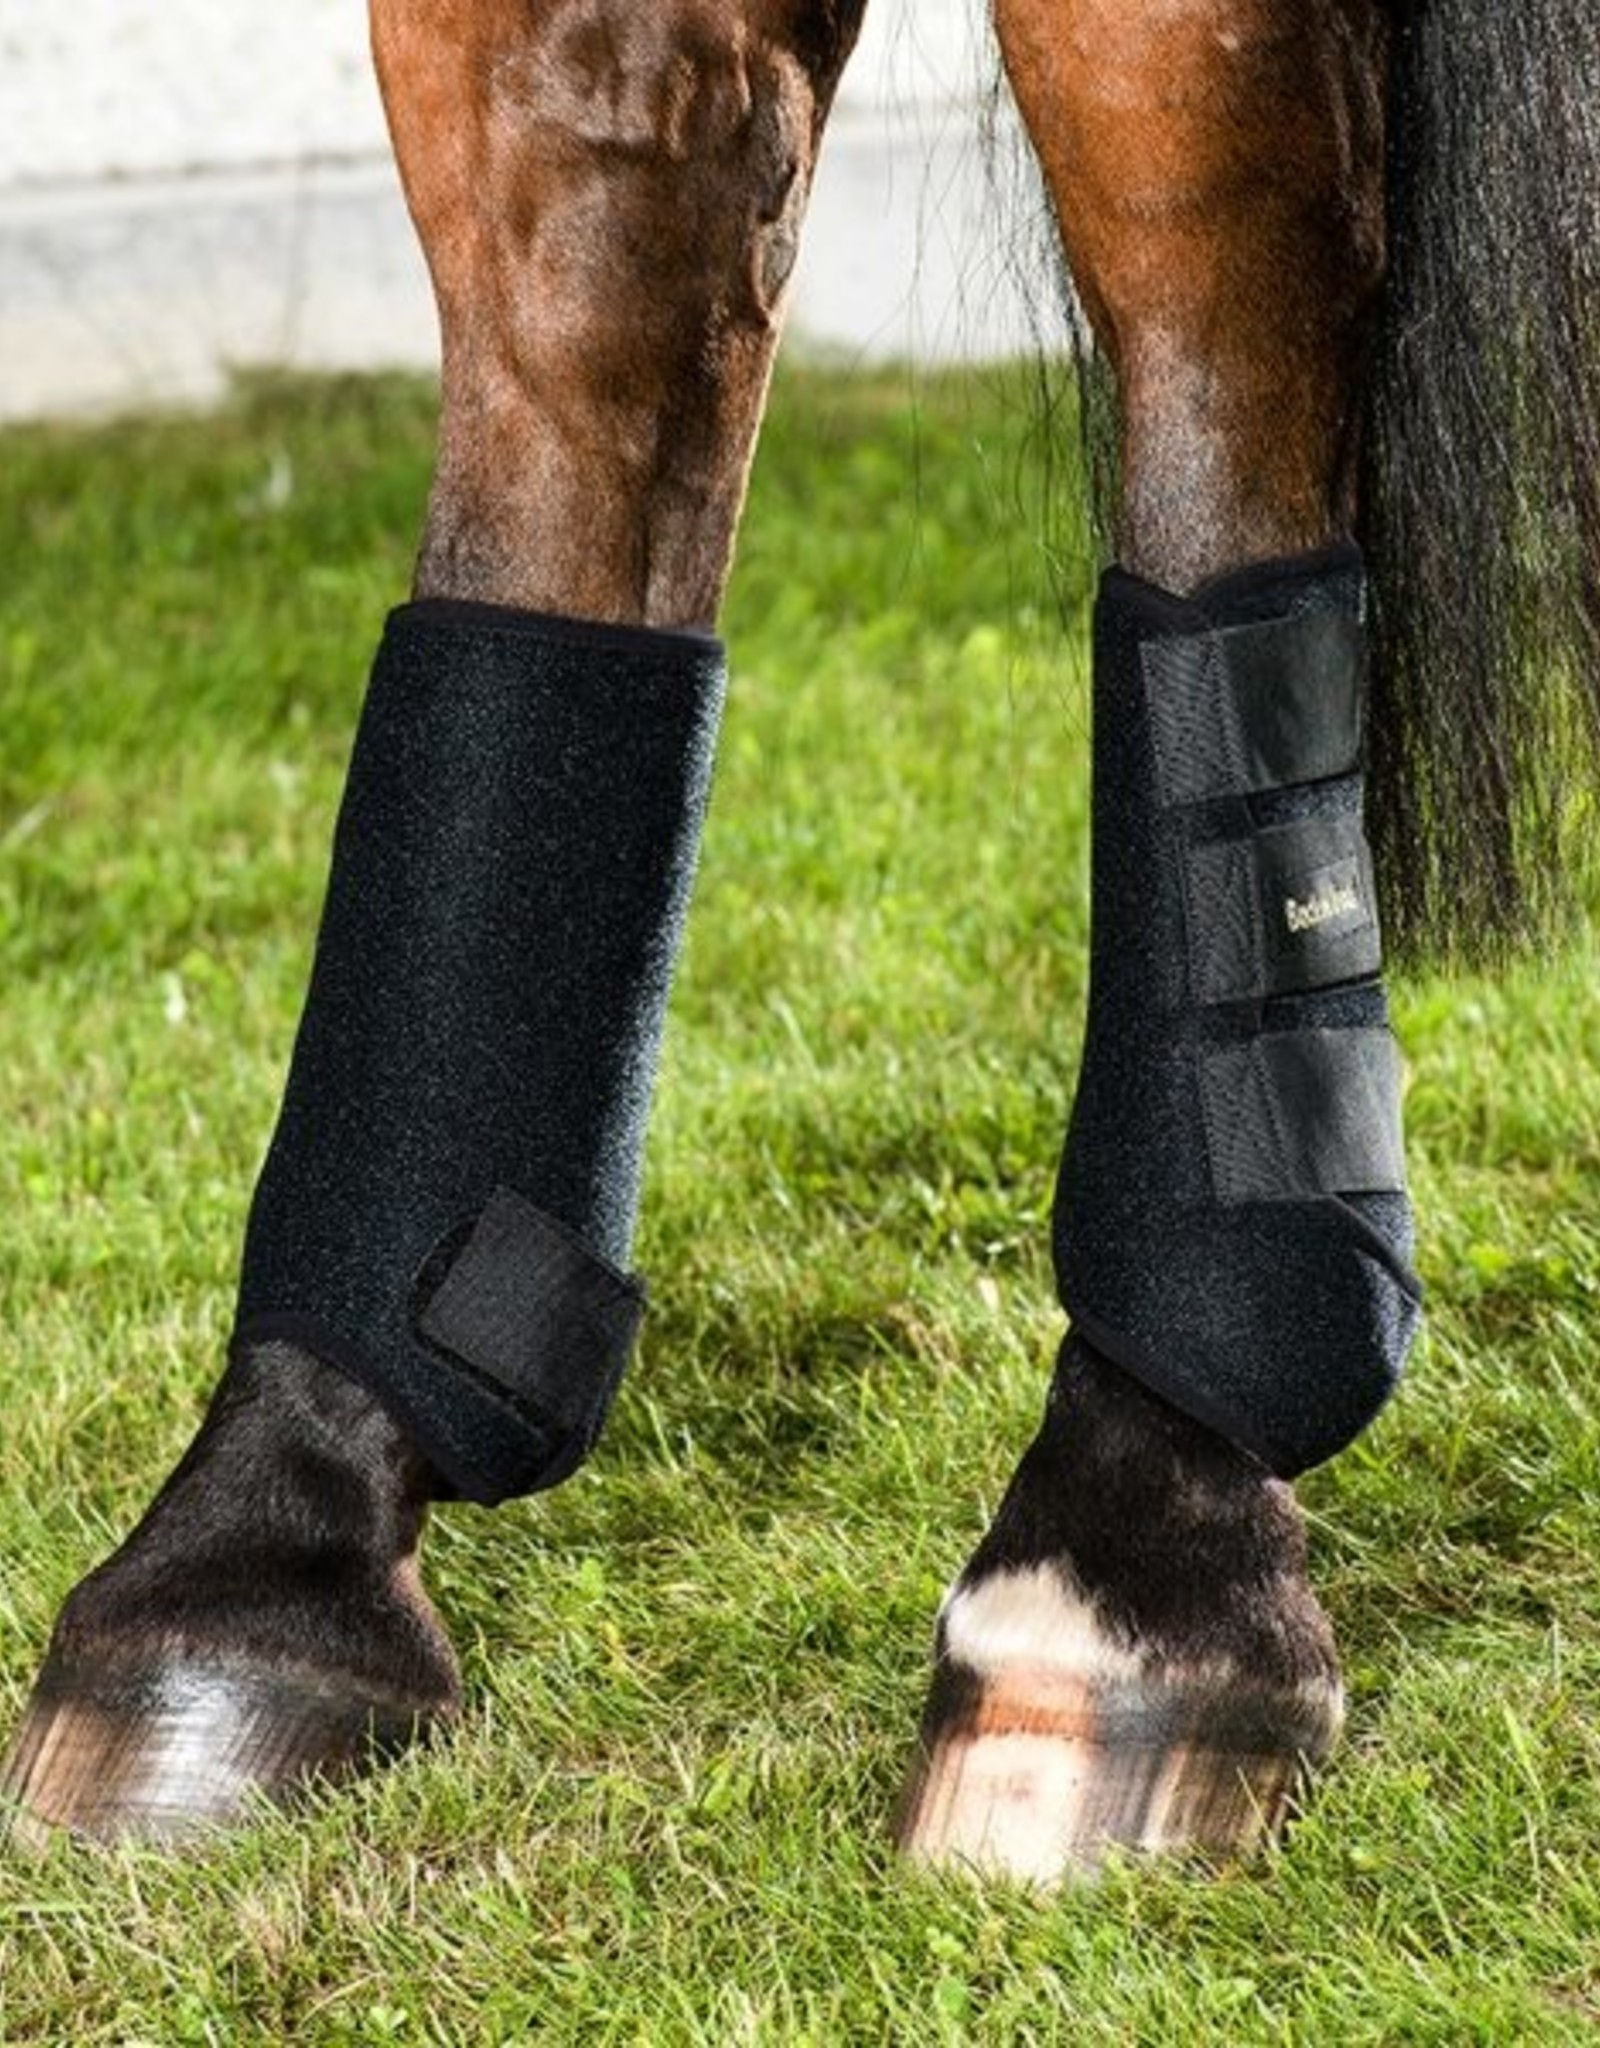 BACK ON TRACK EXERCISE BOOT - HIND LEG